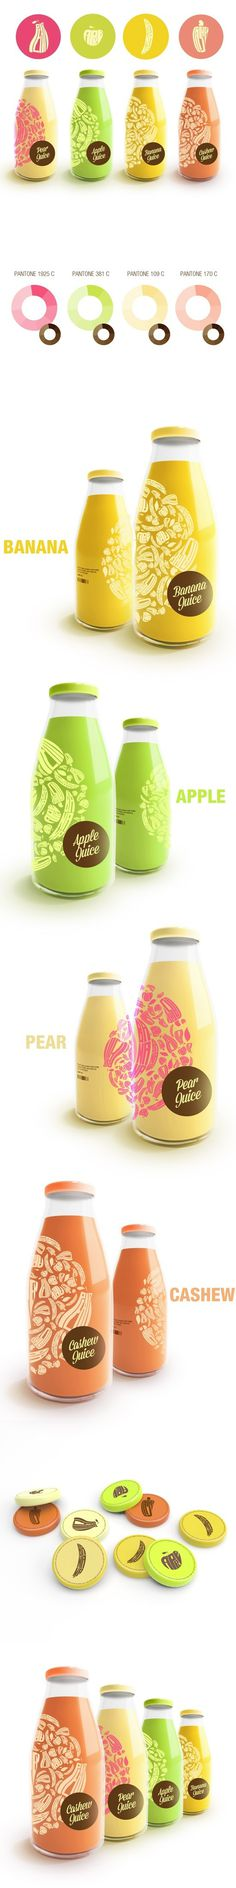 Packaging Project by Renan Vizzotto